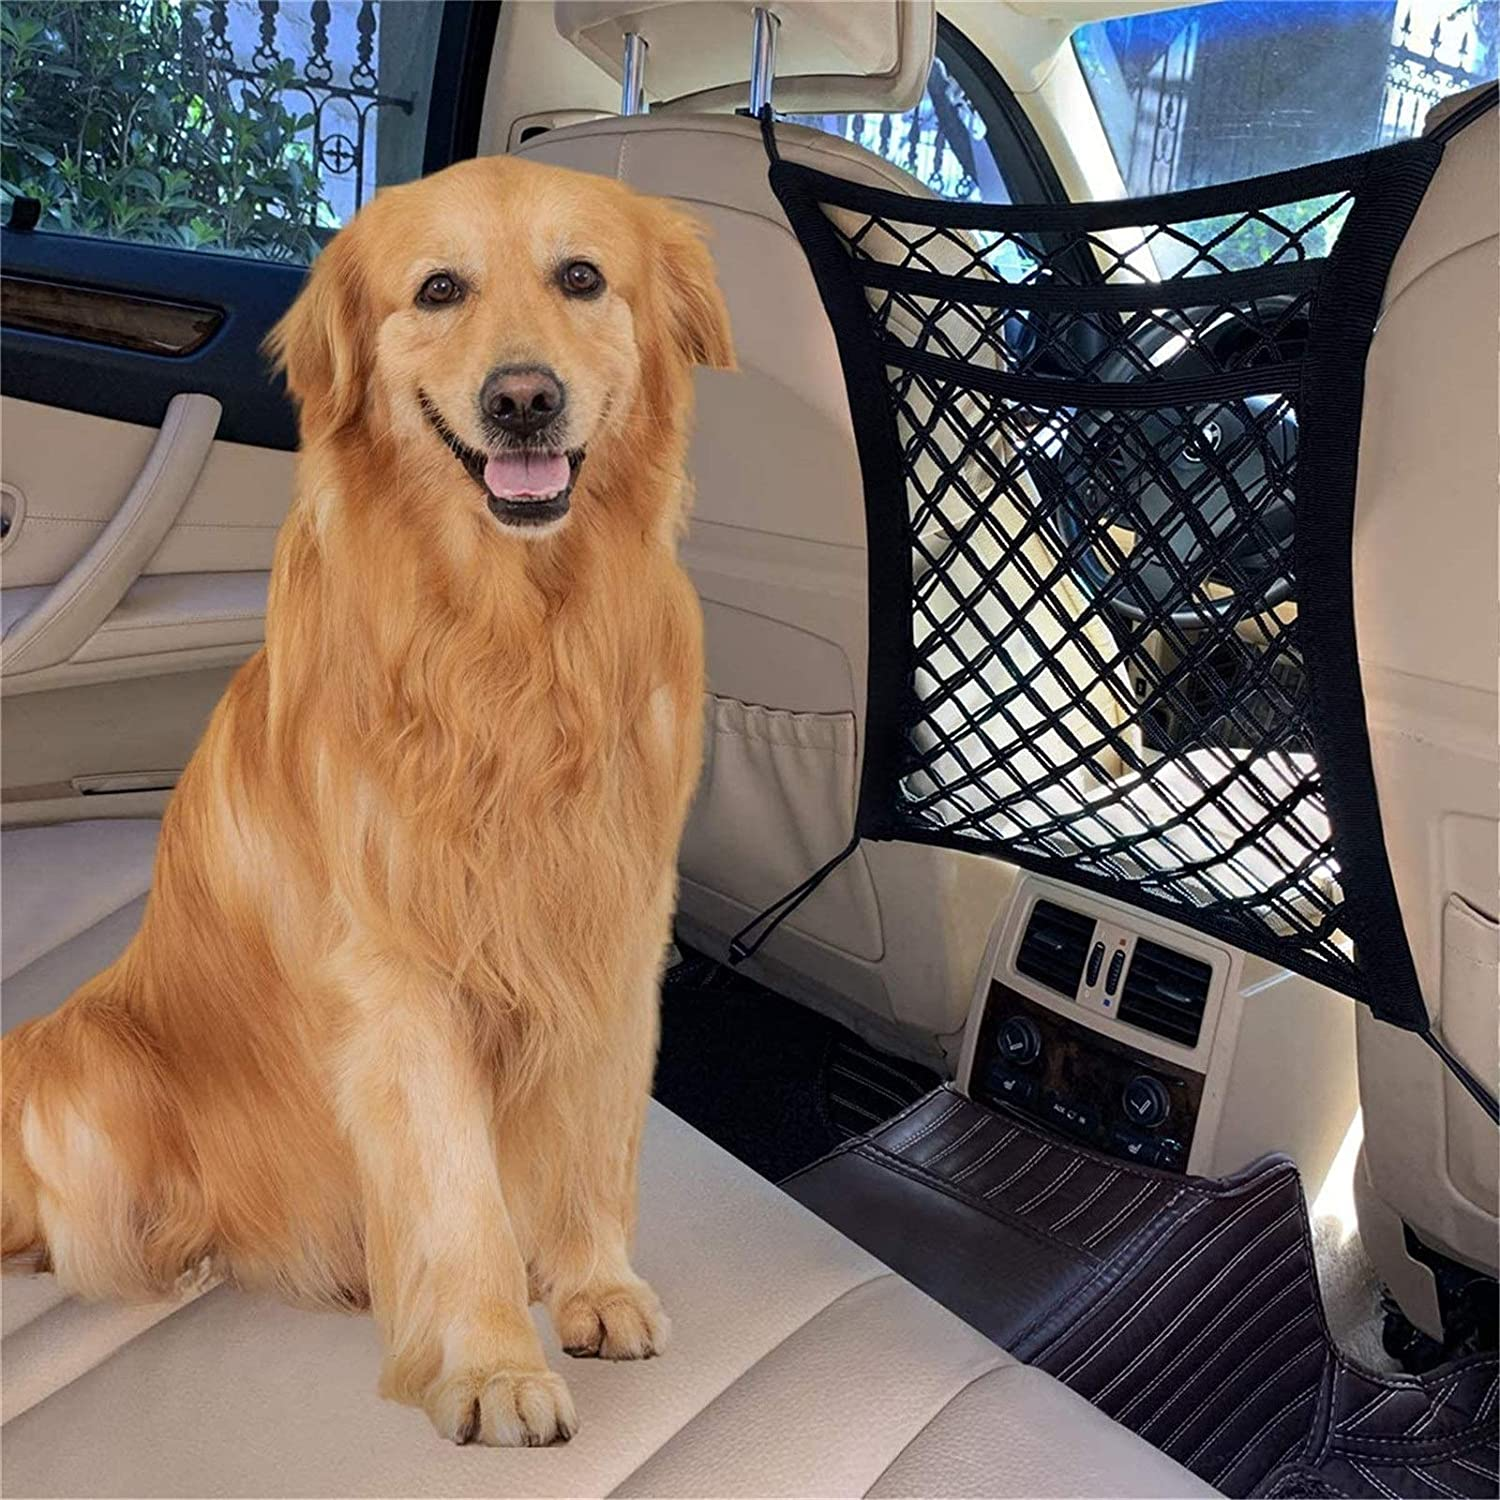 FCILY Car Dog Barrier, Pet Barrier Dog Net for Car Between Seats, 3 Layers Back Seat Net Organizer, Backseat Mesh Bag for Cars, SUVs, Trucks, Drive Safely with Children & Pets : Pet Supplies